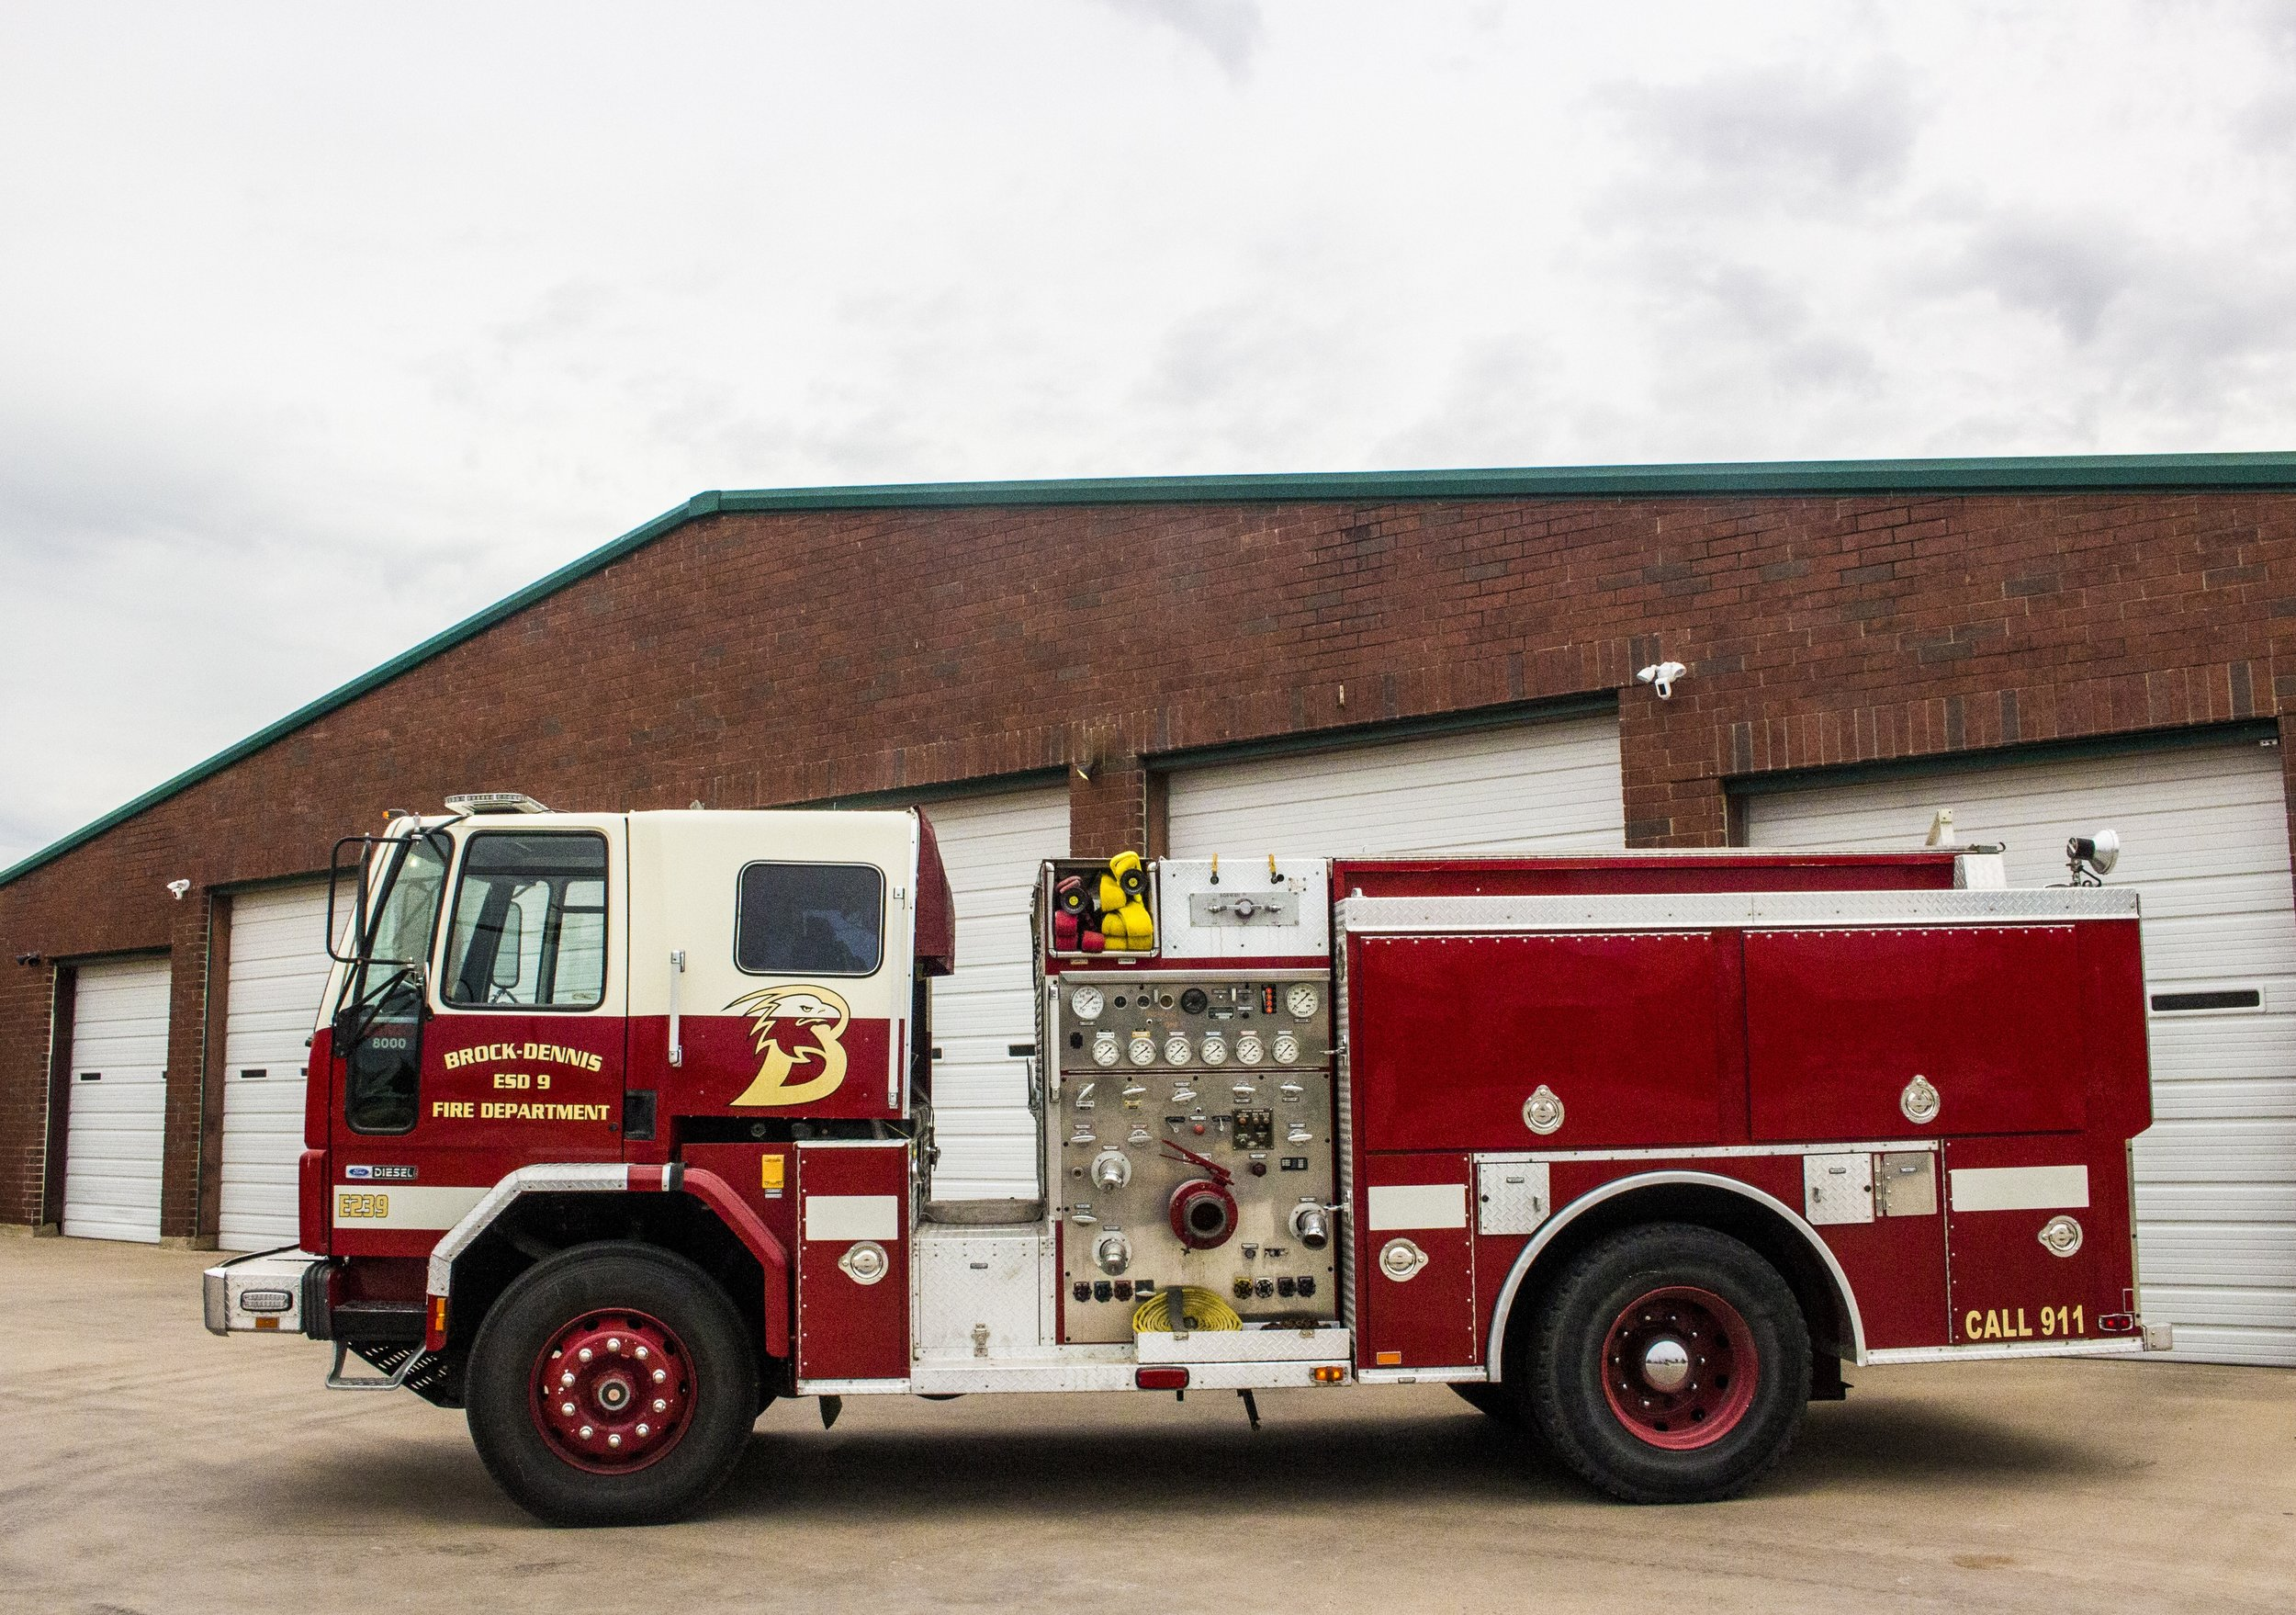 E239 - We purchased this truck from California in 2007 to replace a truck that was no longer dependable. It has a 500 gallon water capacity and can carry 5 firefighters. The BDVFD donated this truck to Gordon VFD in 2019.